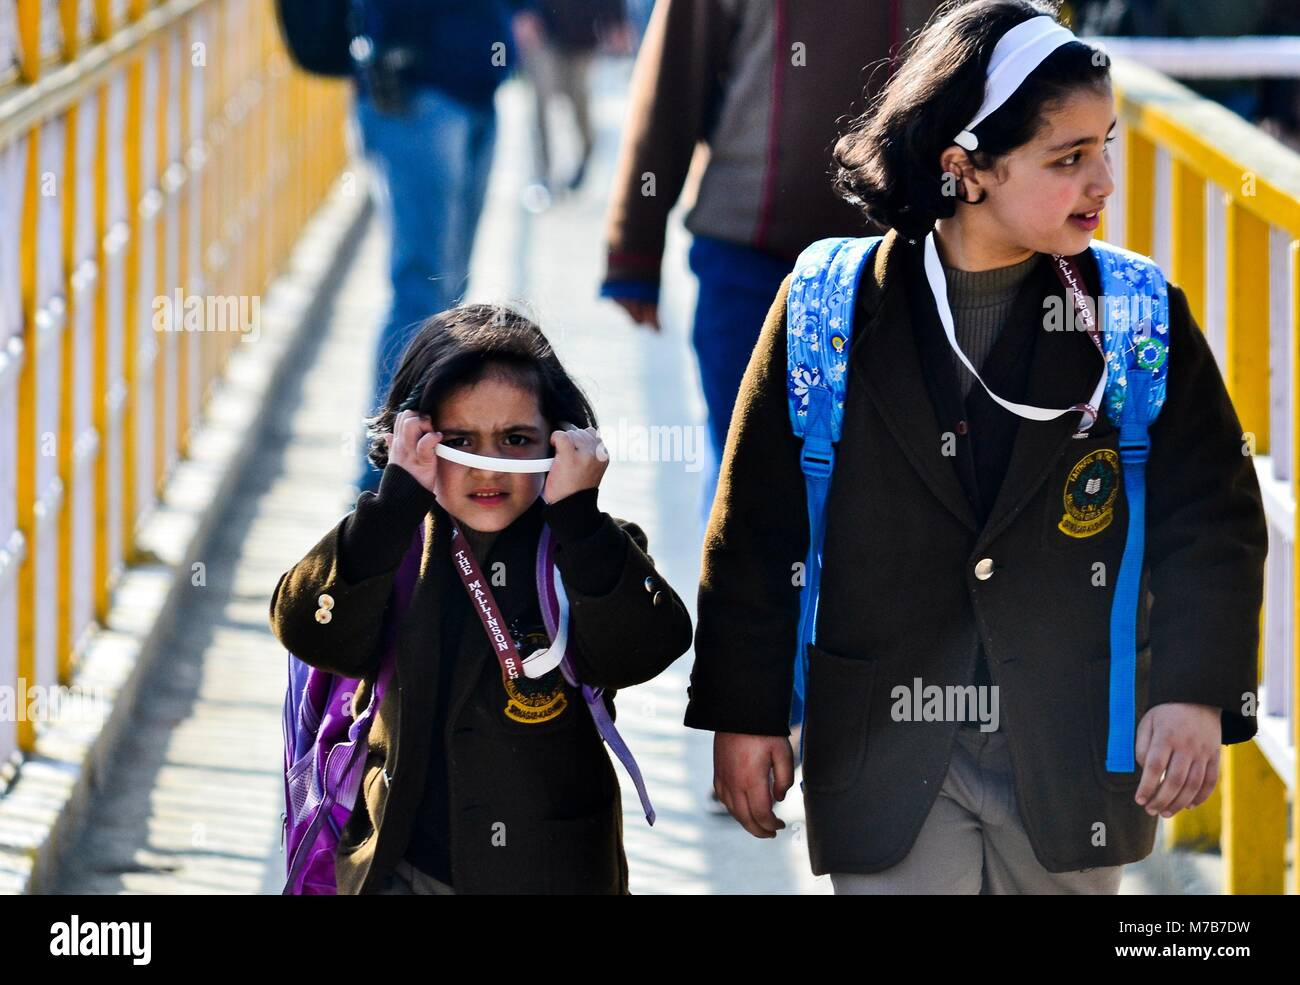 Srinagar, India. 10th Mar, 2018. Kashmiri girl students walk towards the school on the first day of the schooling - Stock Image